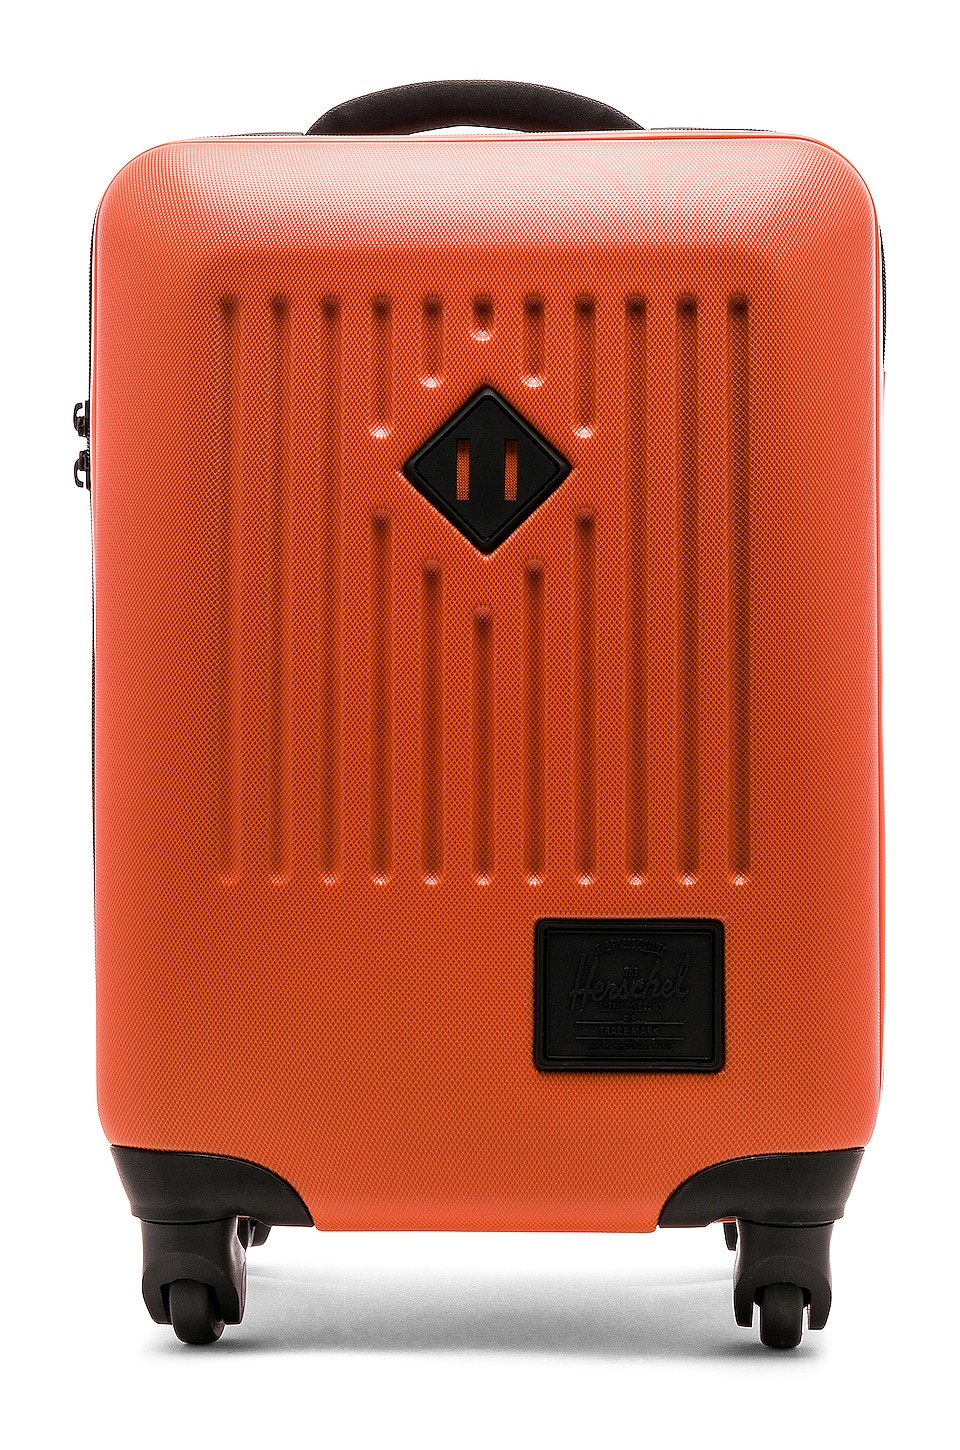 Herschel Supply Co. Trade Carry On Suitcase in Vermillion Orange